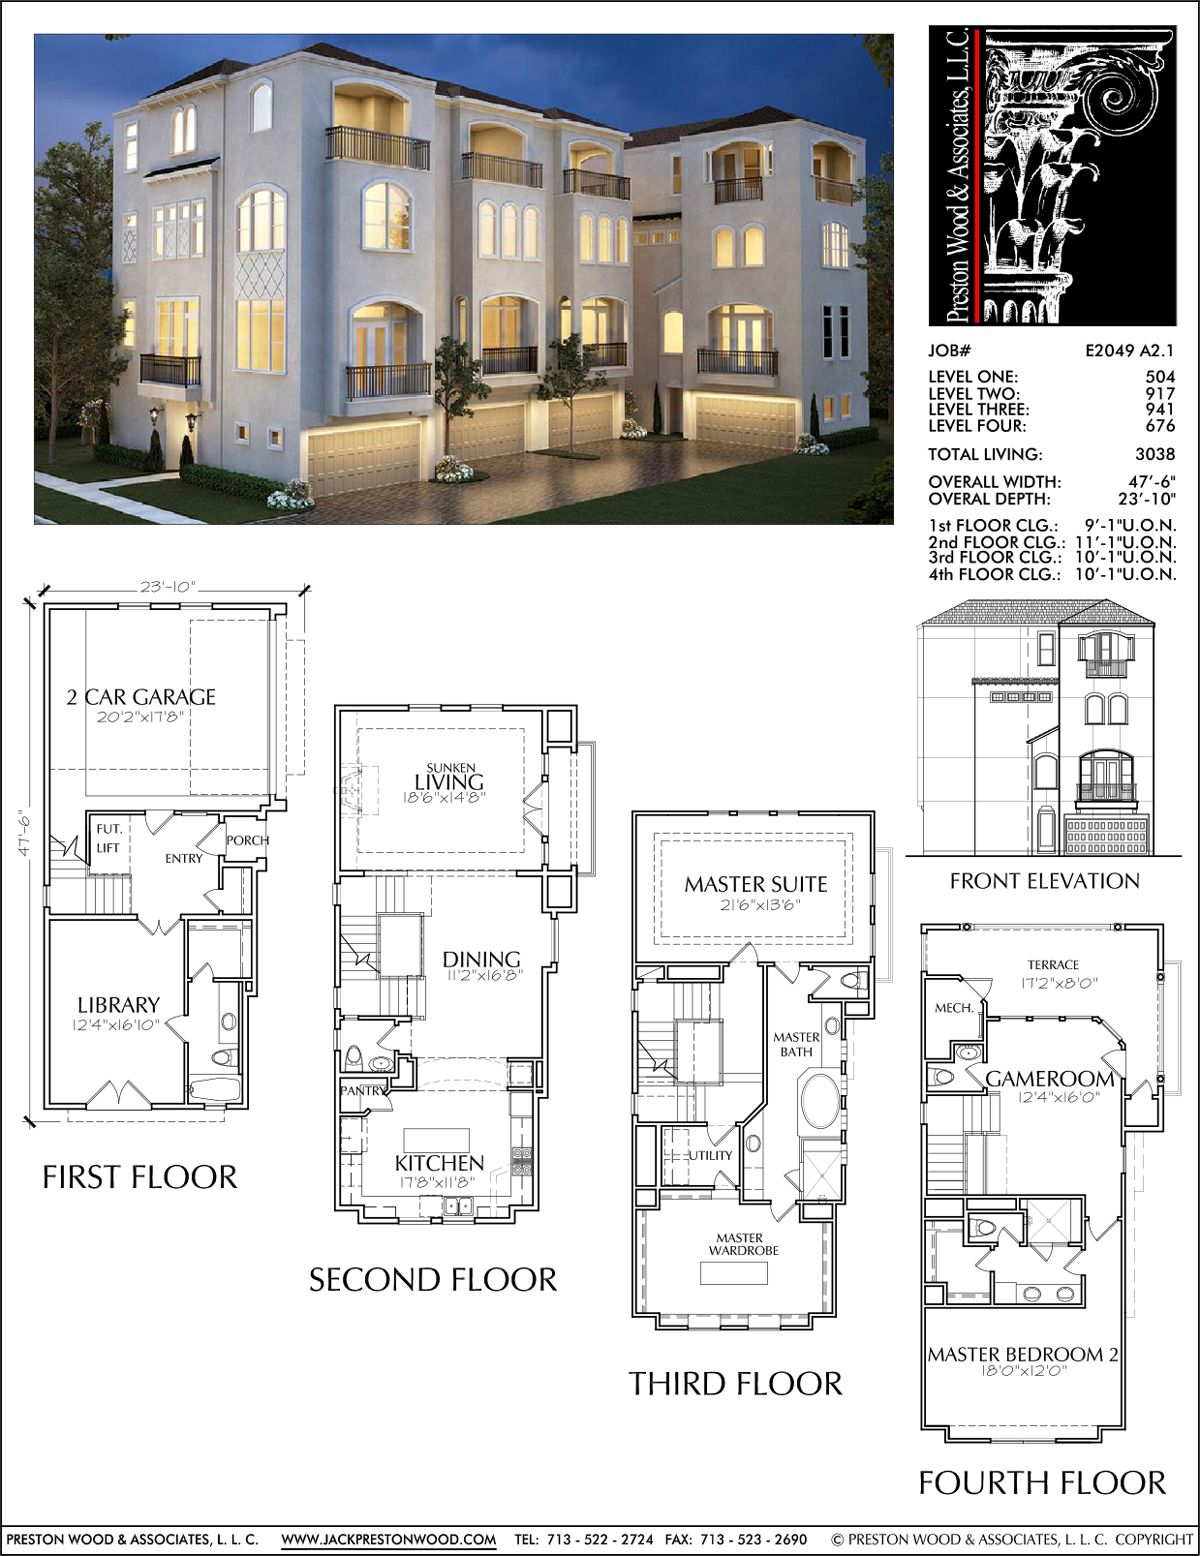 Townhouse plan e2049 a2 1 r c h pinterest for Townhouse plans